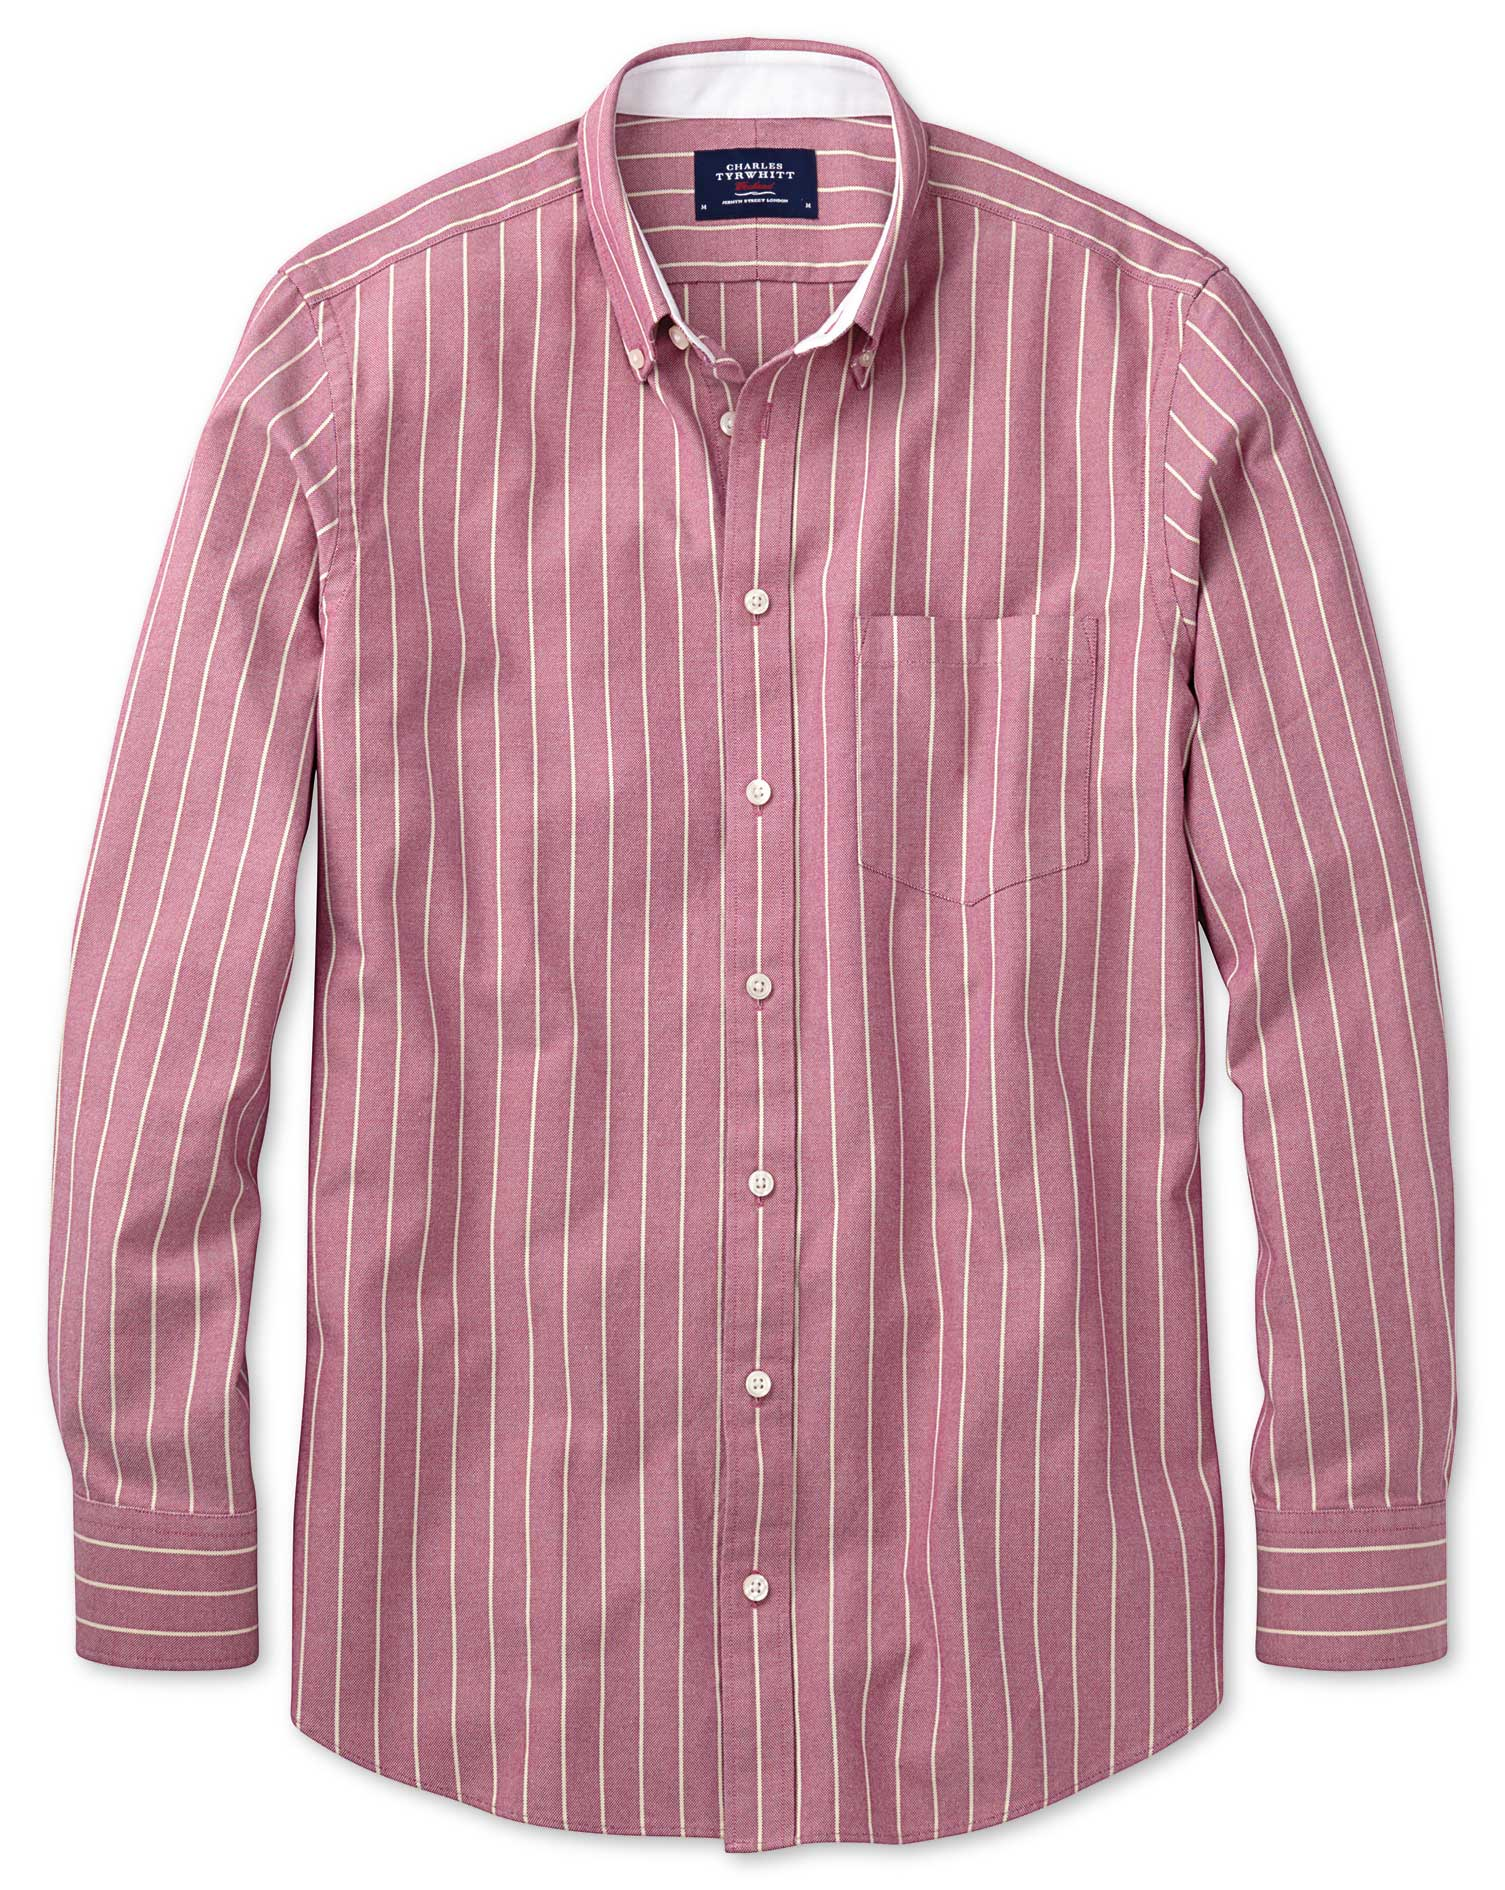 Extra Slim Fit Magenta Stripe Washed Oxford Cotton Shirt Single Cuff Size Large by Charles Tyrwhitt